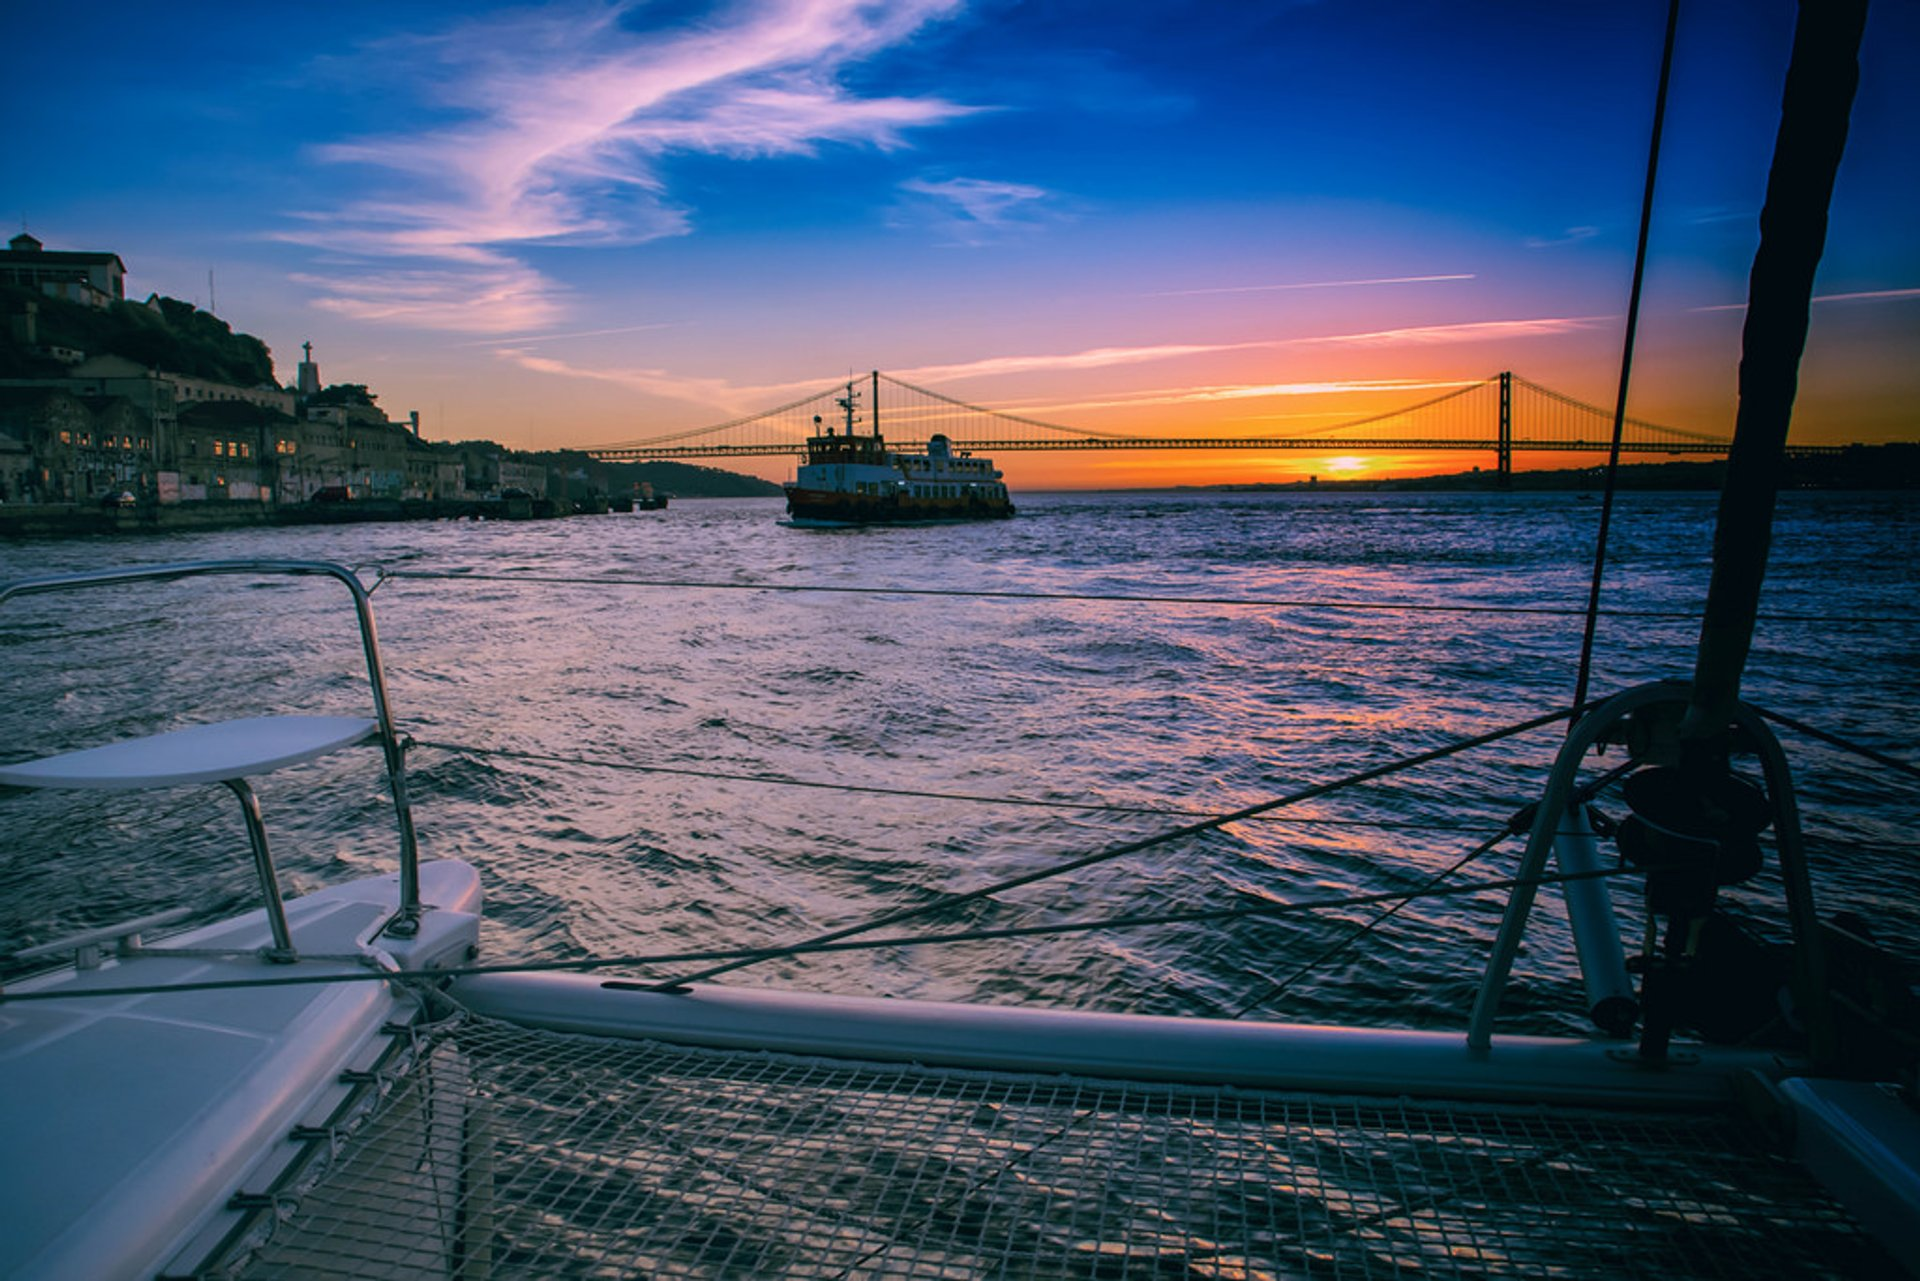 Tagus River Sunset Cruise in Lisbon 2020 - Best Time